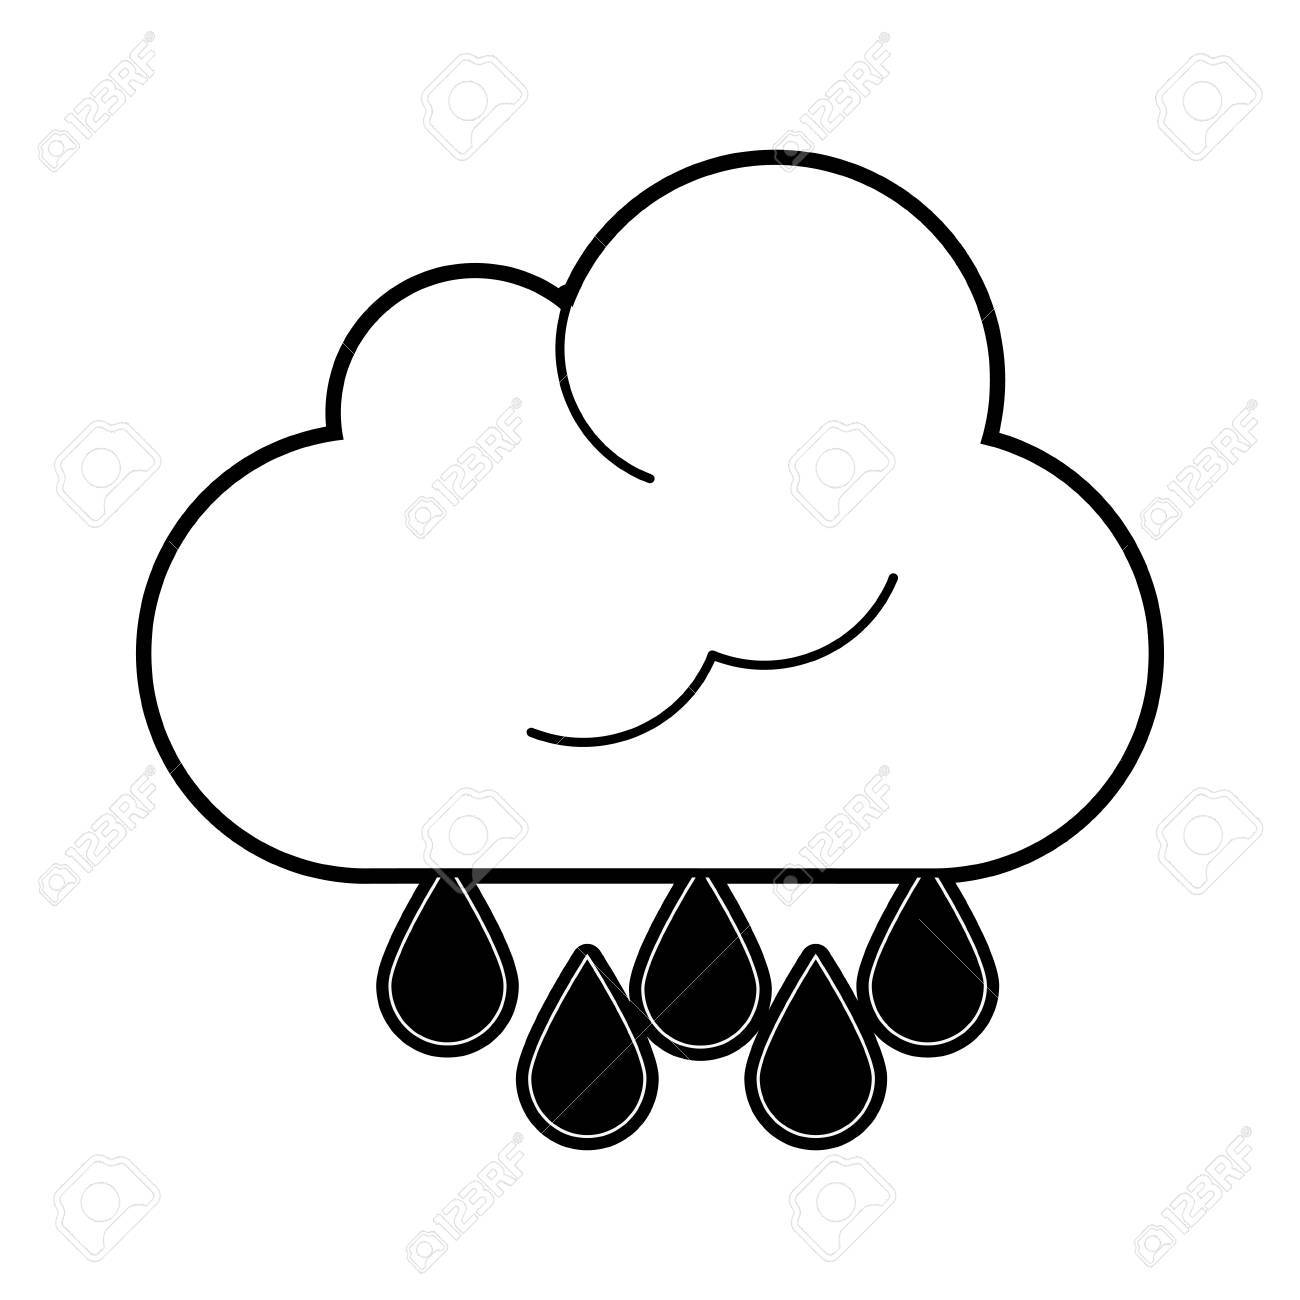 1300x1300 Cloud With Rain Drops Icon Image Vector Illustration Design